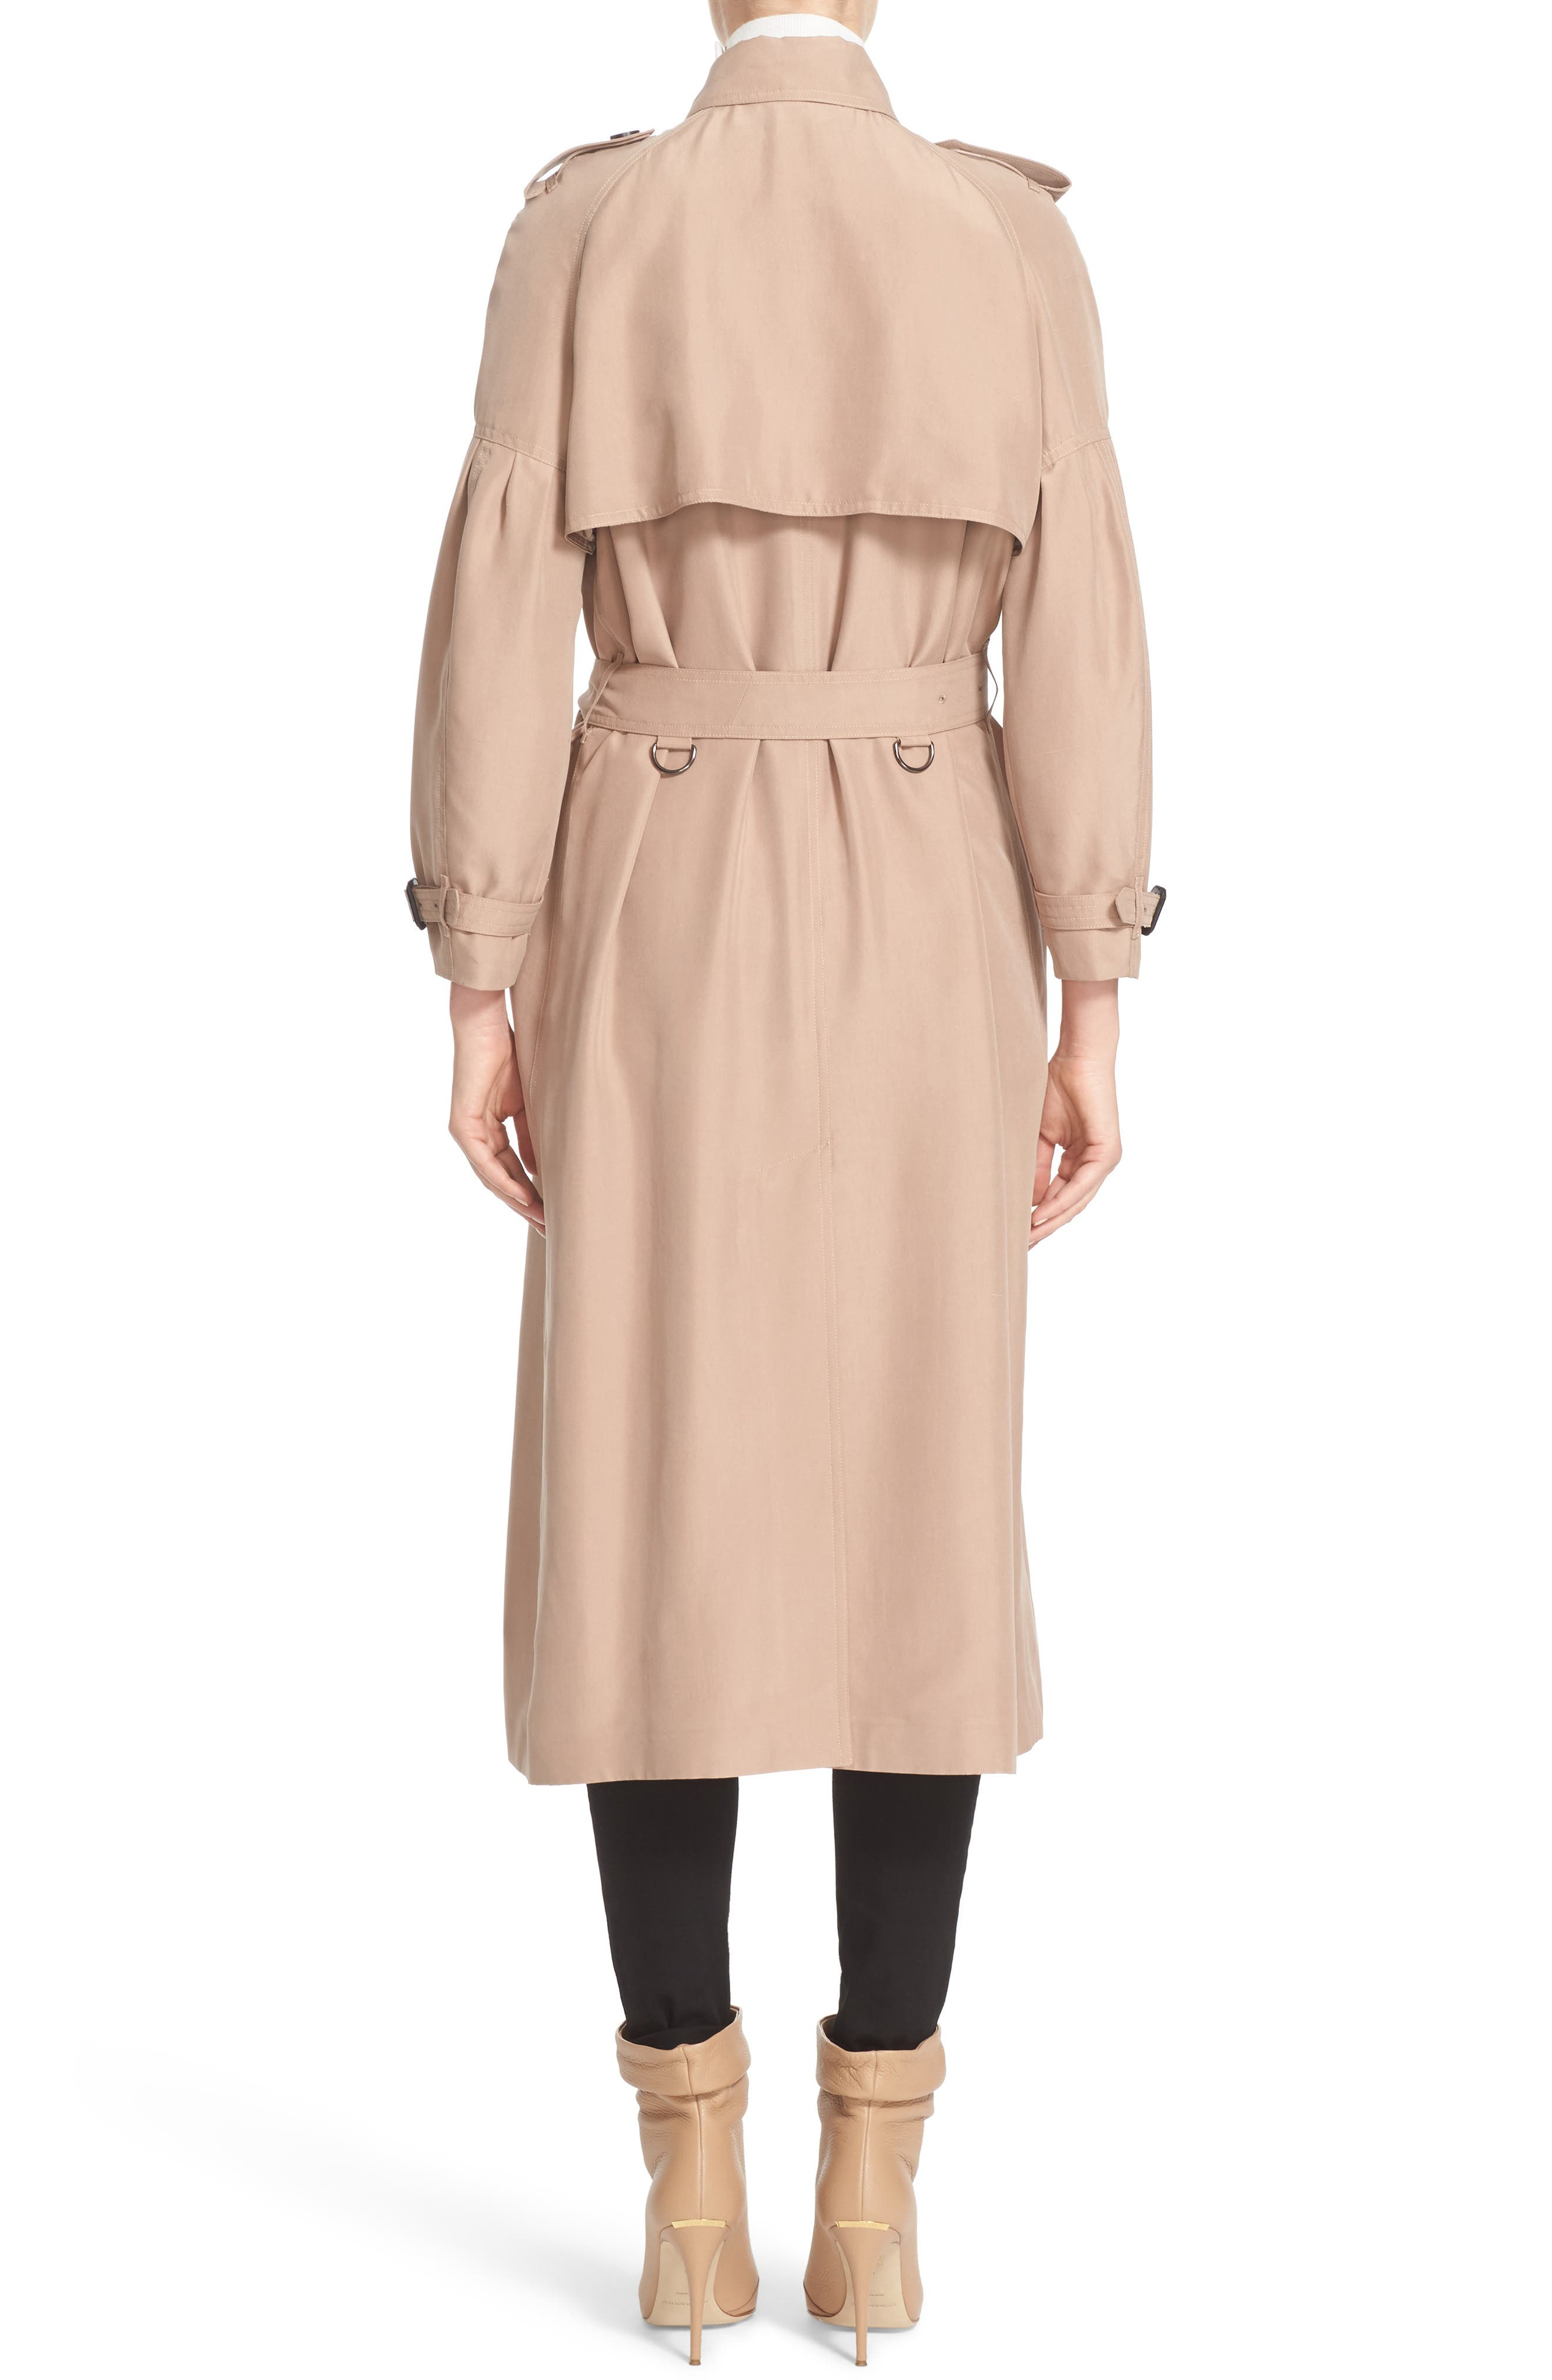 BURBERRY, Maythorne Mulberry Silk Trench, Alternate thumbnail 2, color, 250